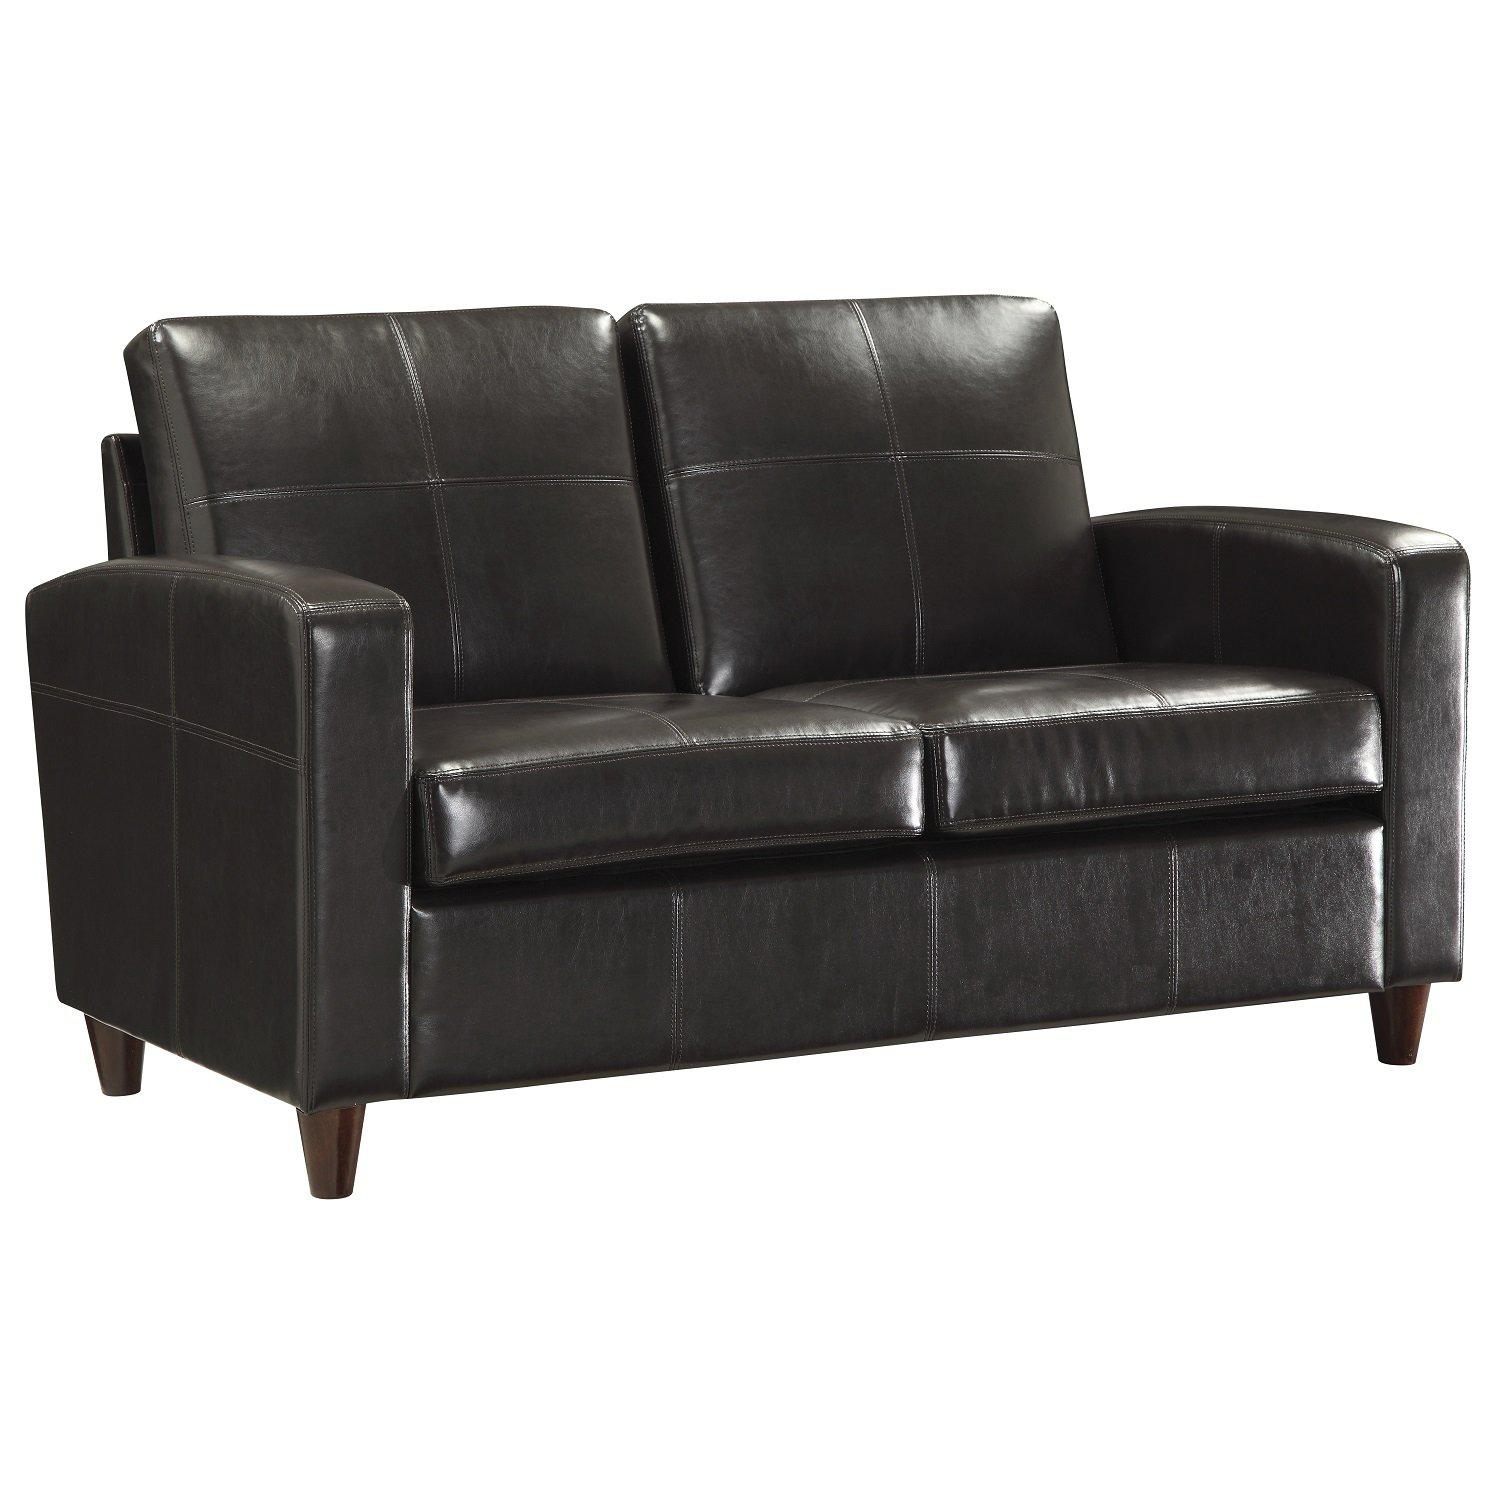 Bonded Leather Loveseat With Espresso Finish Legs